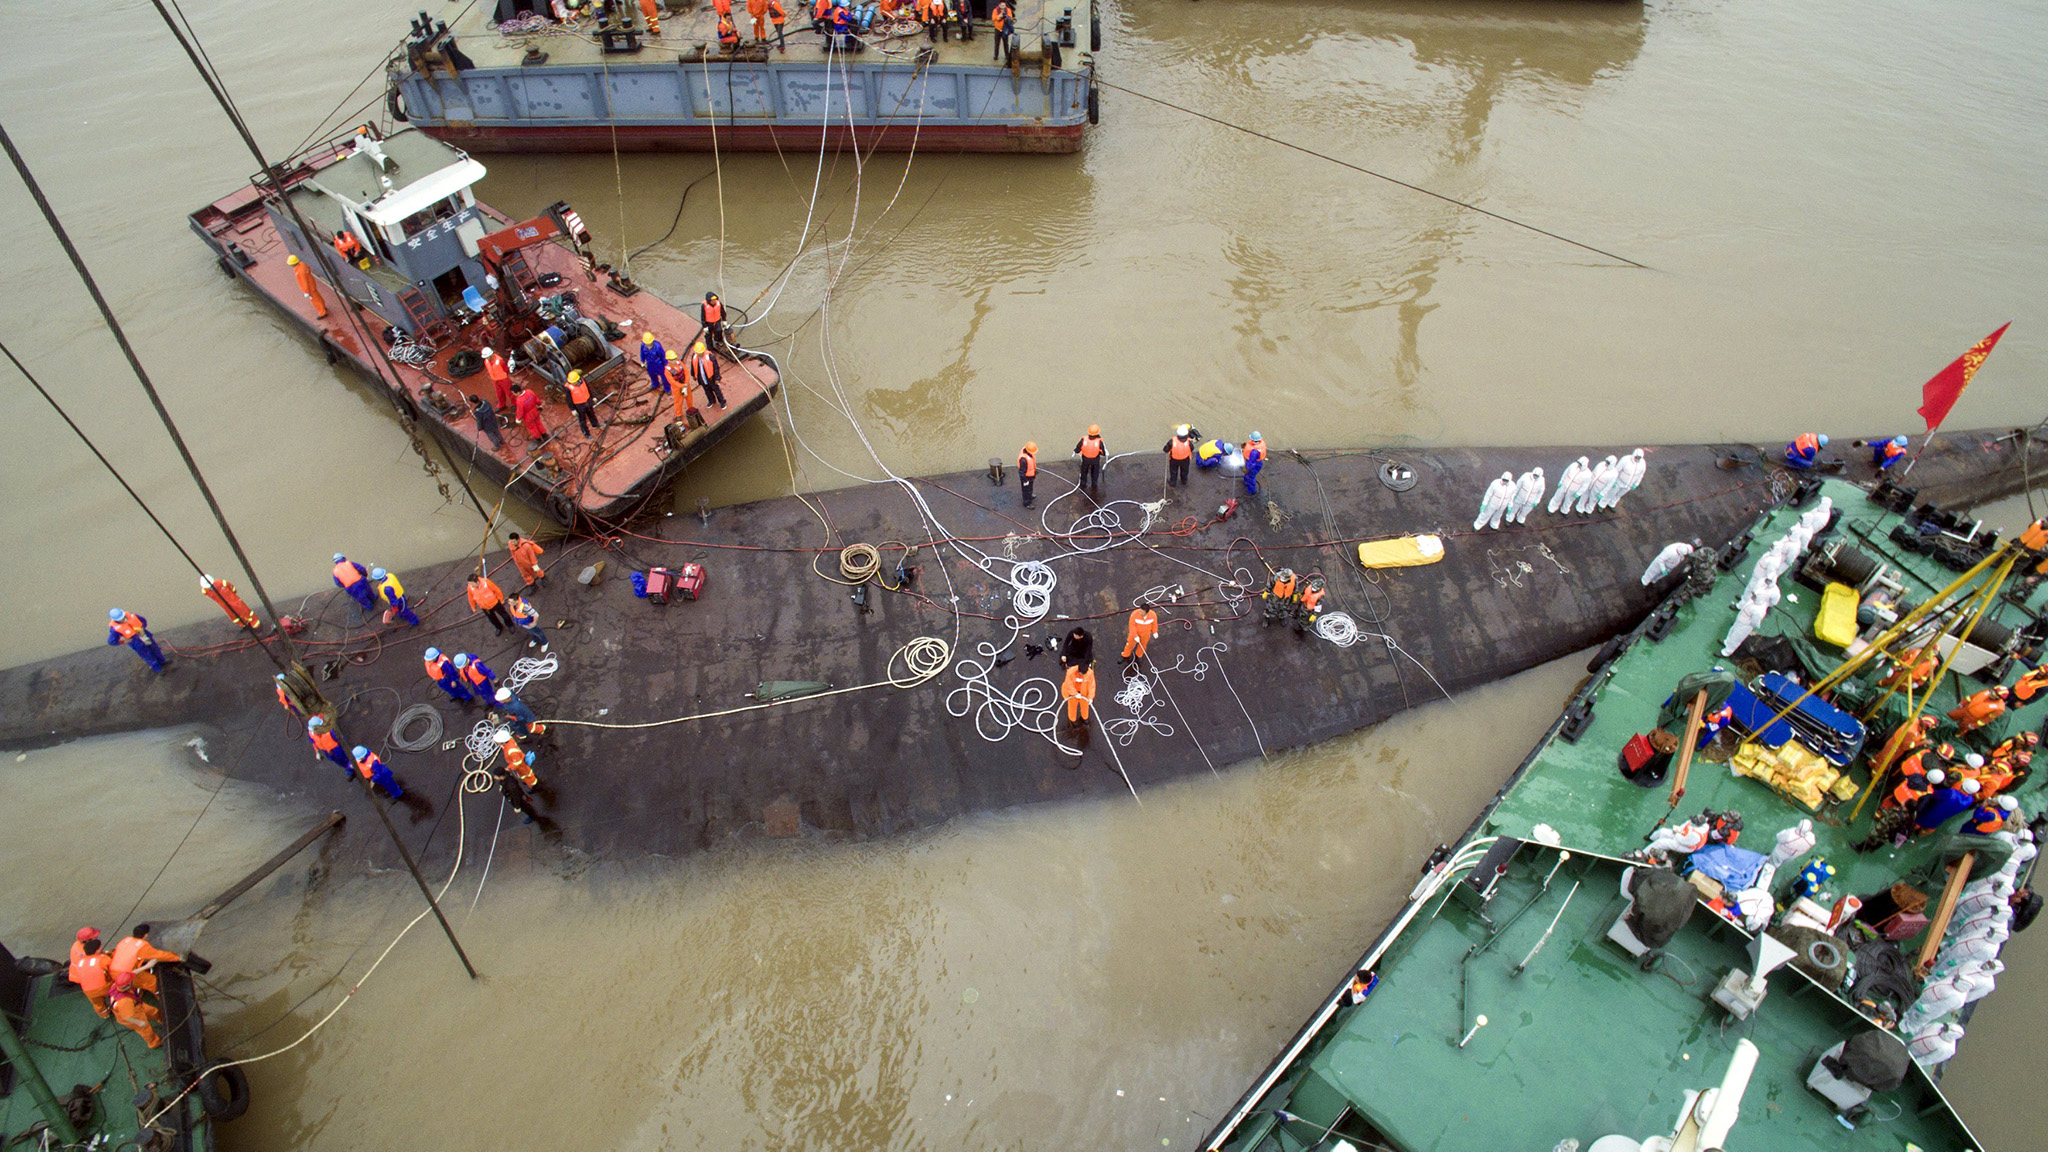 An aerial view shows rescue workers standing on the sunken cruise ship Eastern Star in Jianli